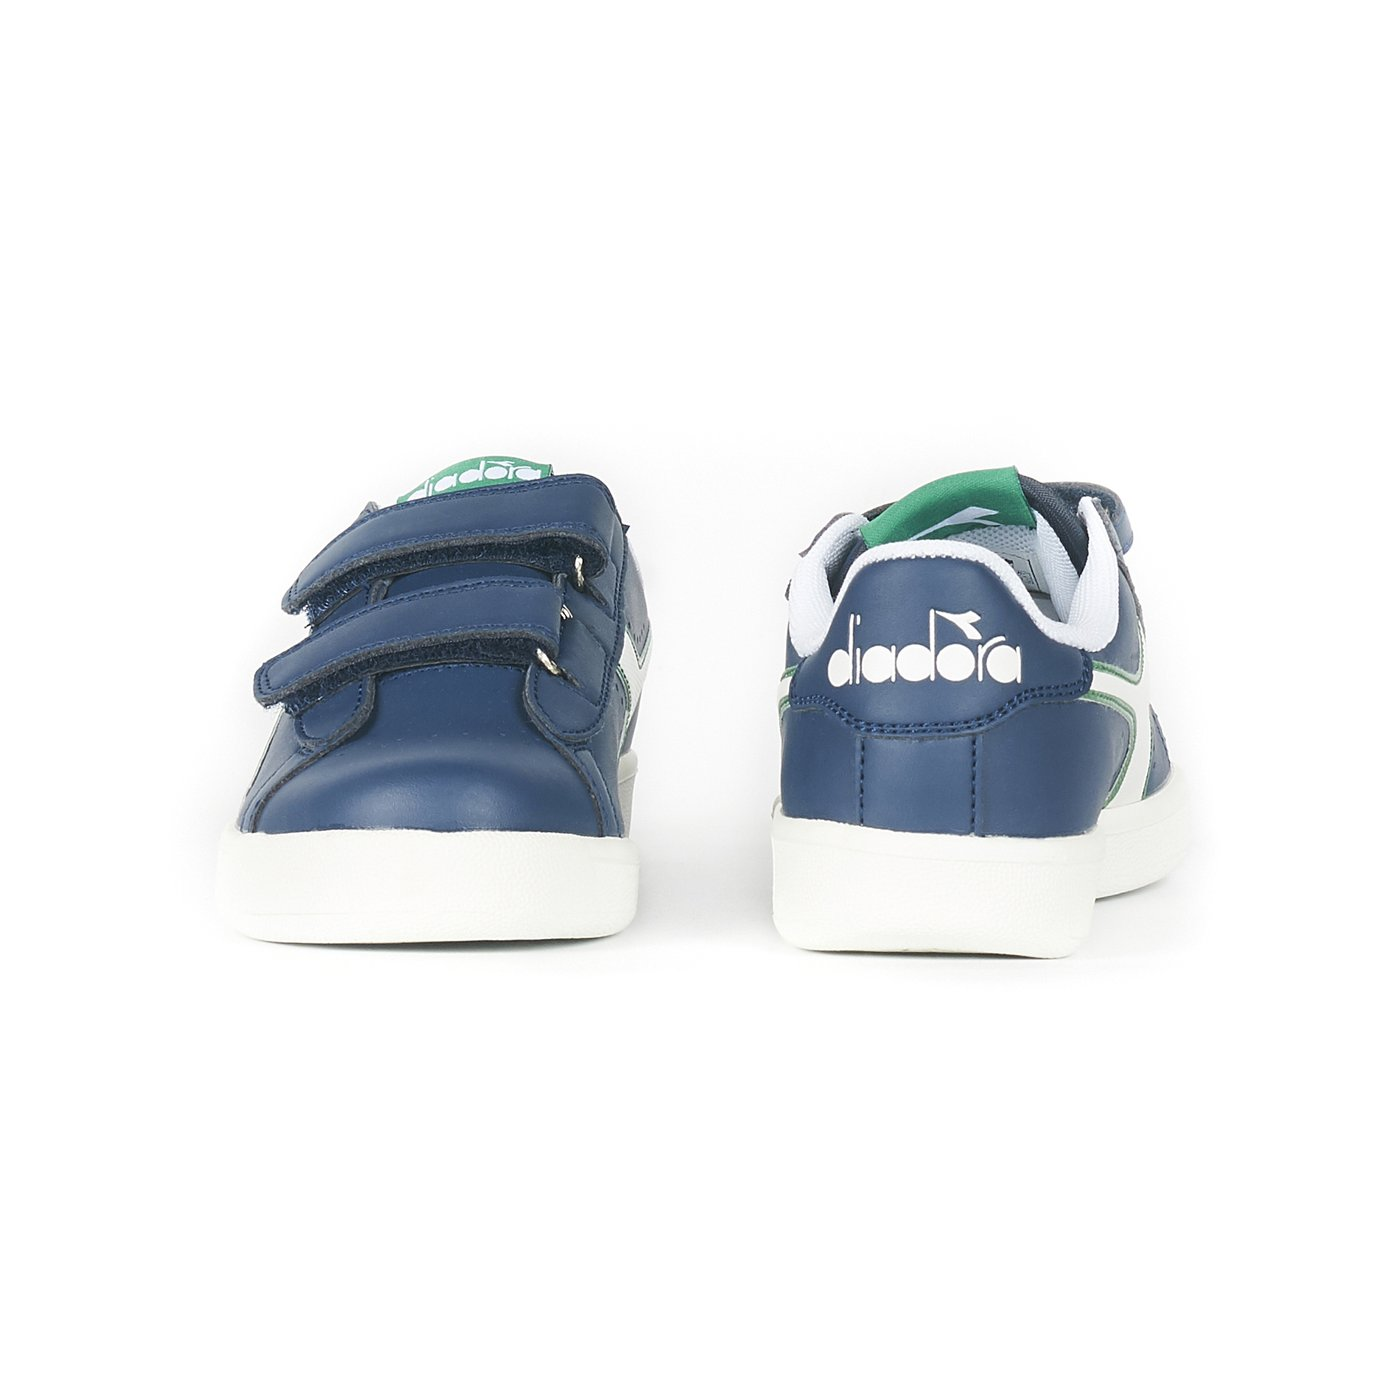 Кеди дитячі Diadora GAME P JR